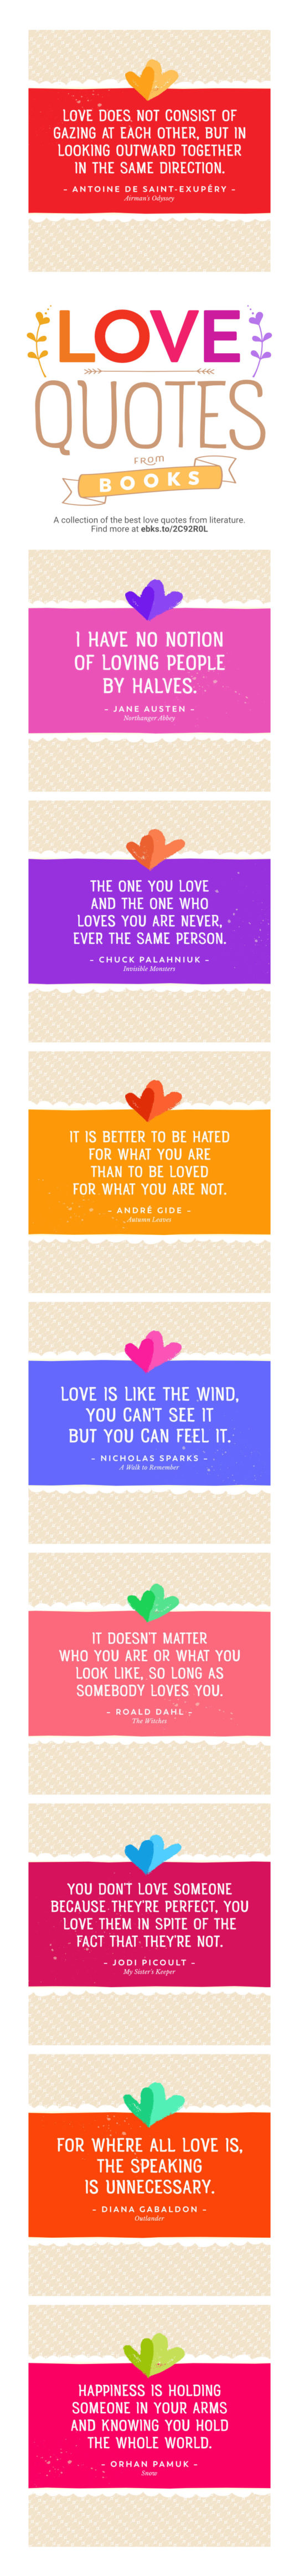 The best love quotes from books #infographic